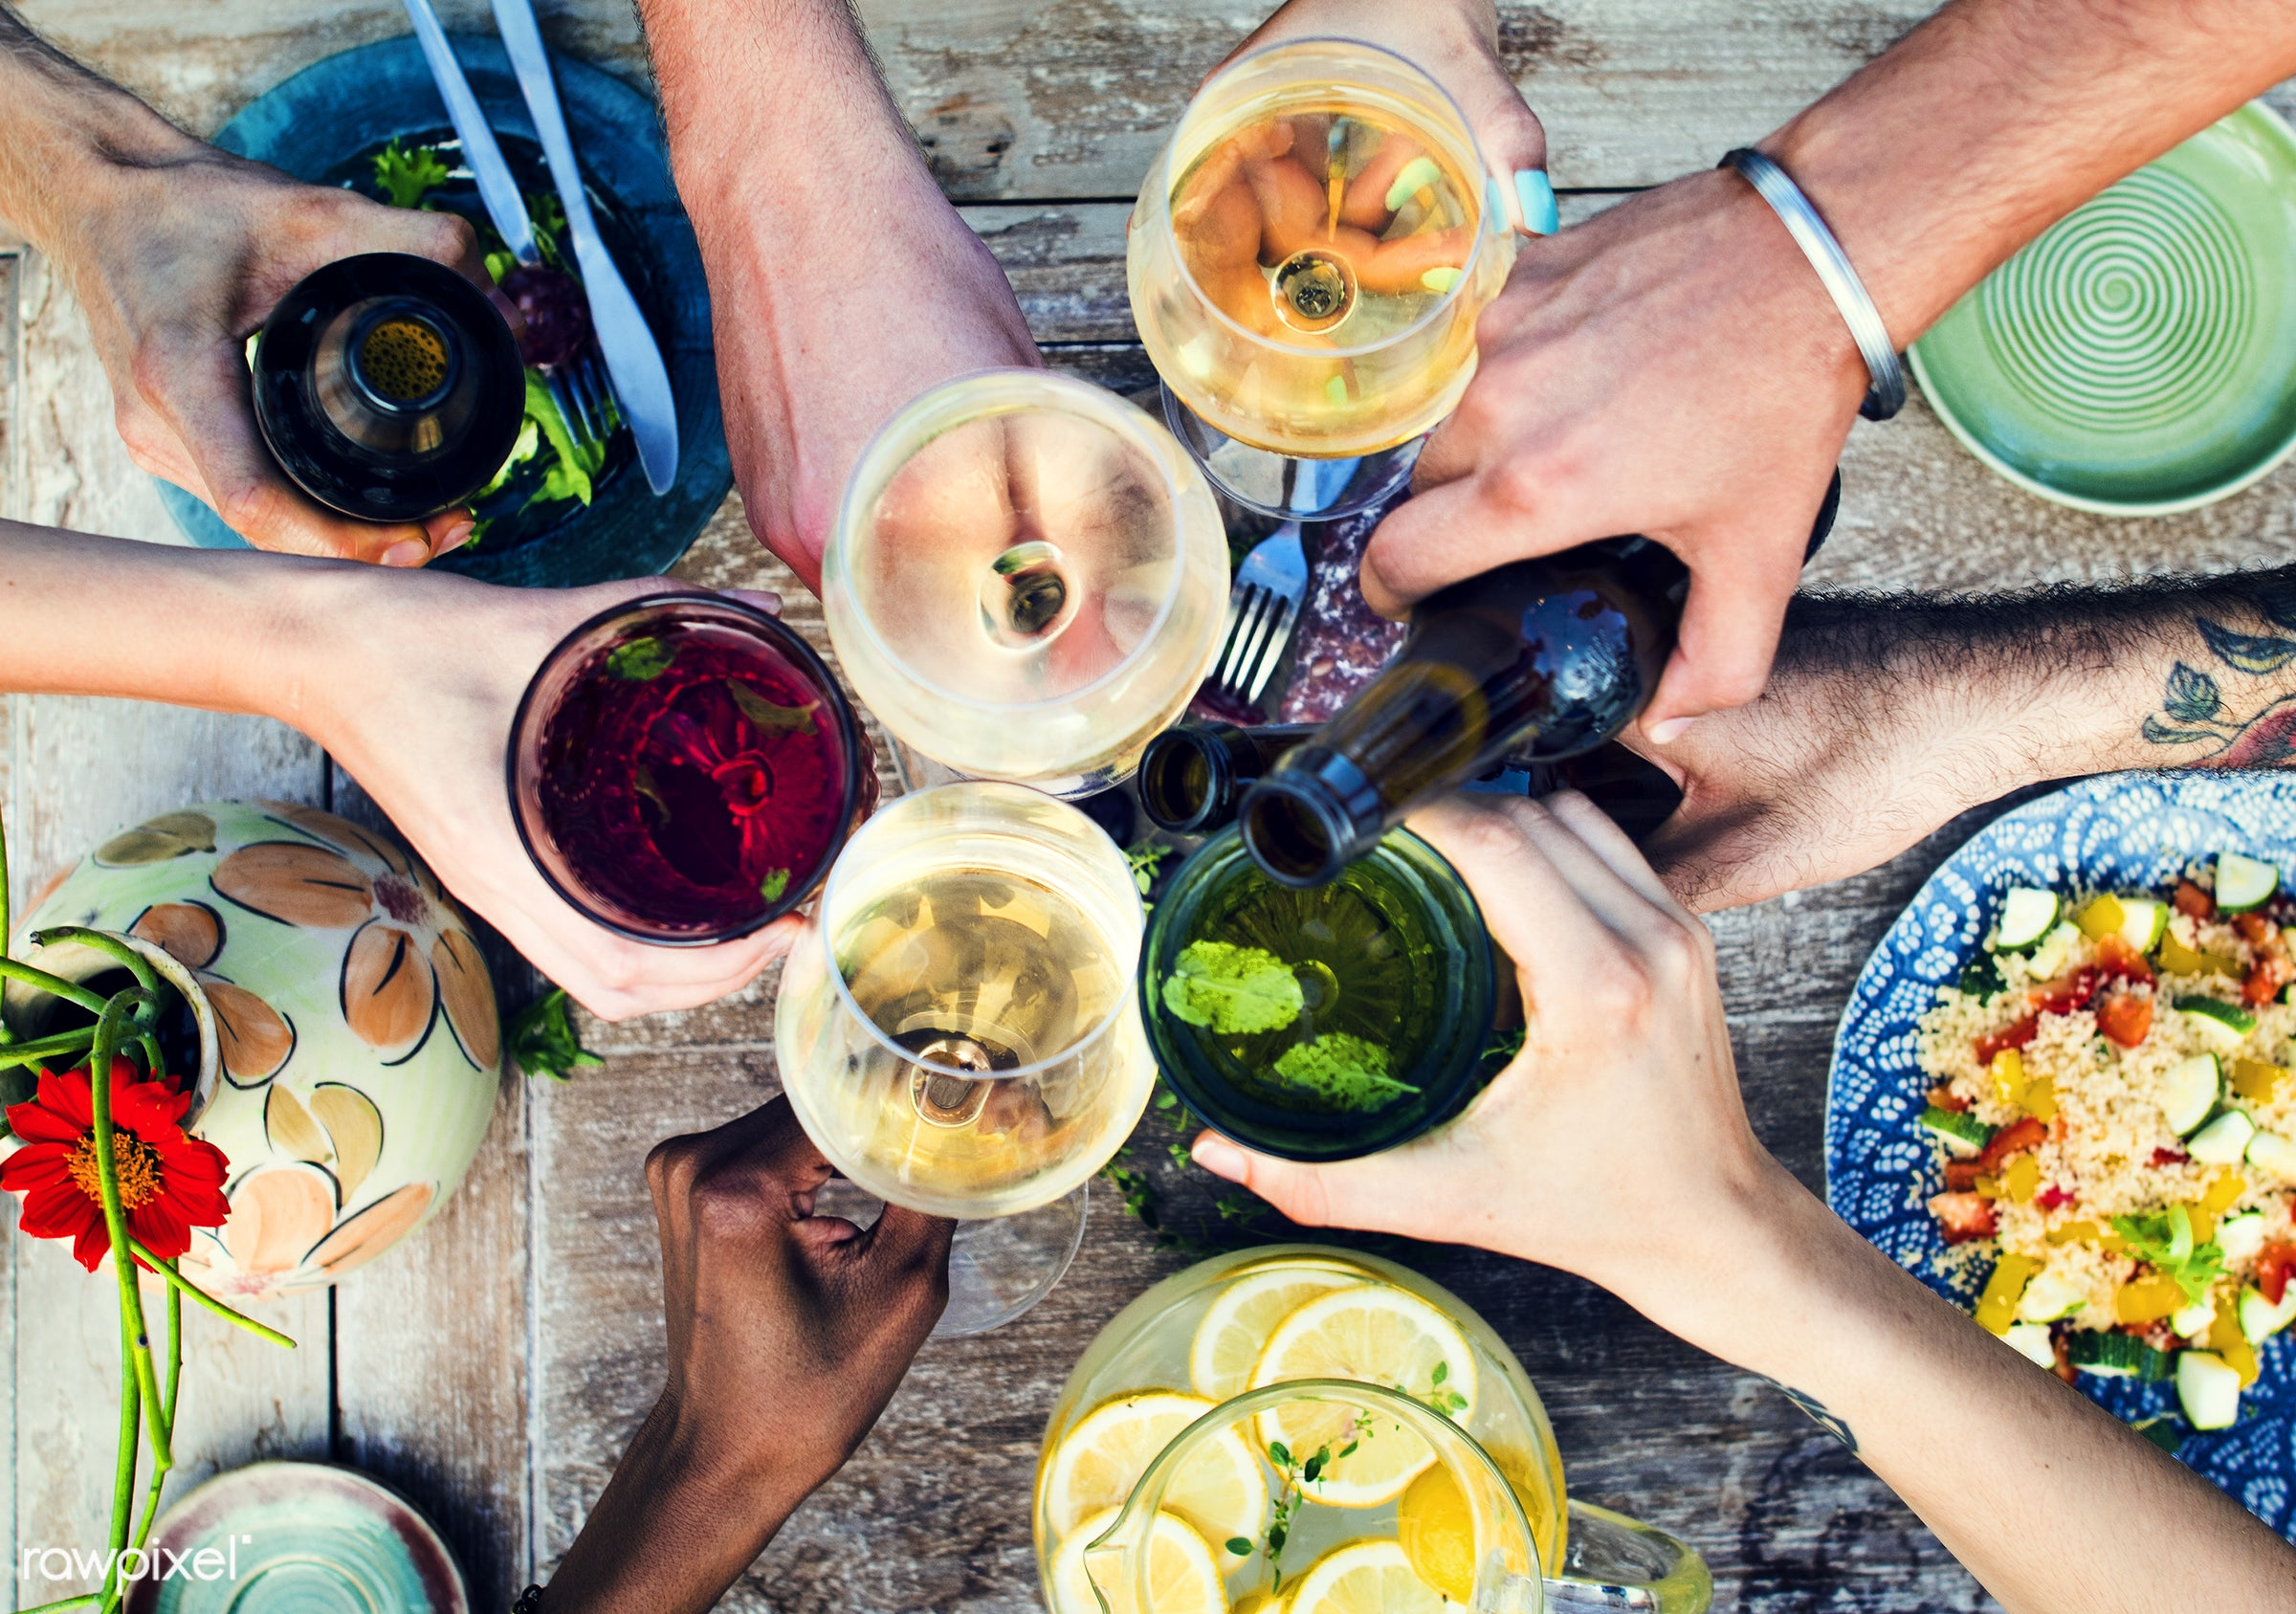 Summer party with food and drinks - beer, aerial view, allspice, beverage, bowl, champagne, cheers, color, colorful, cook,...